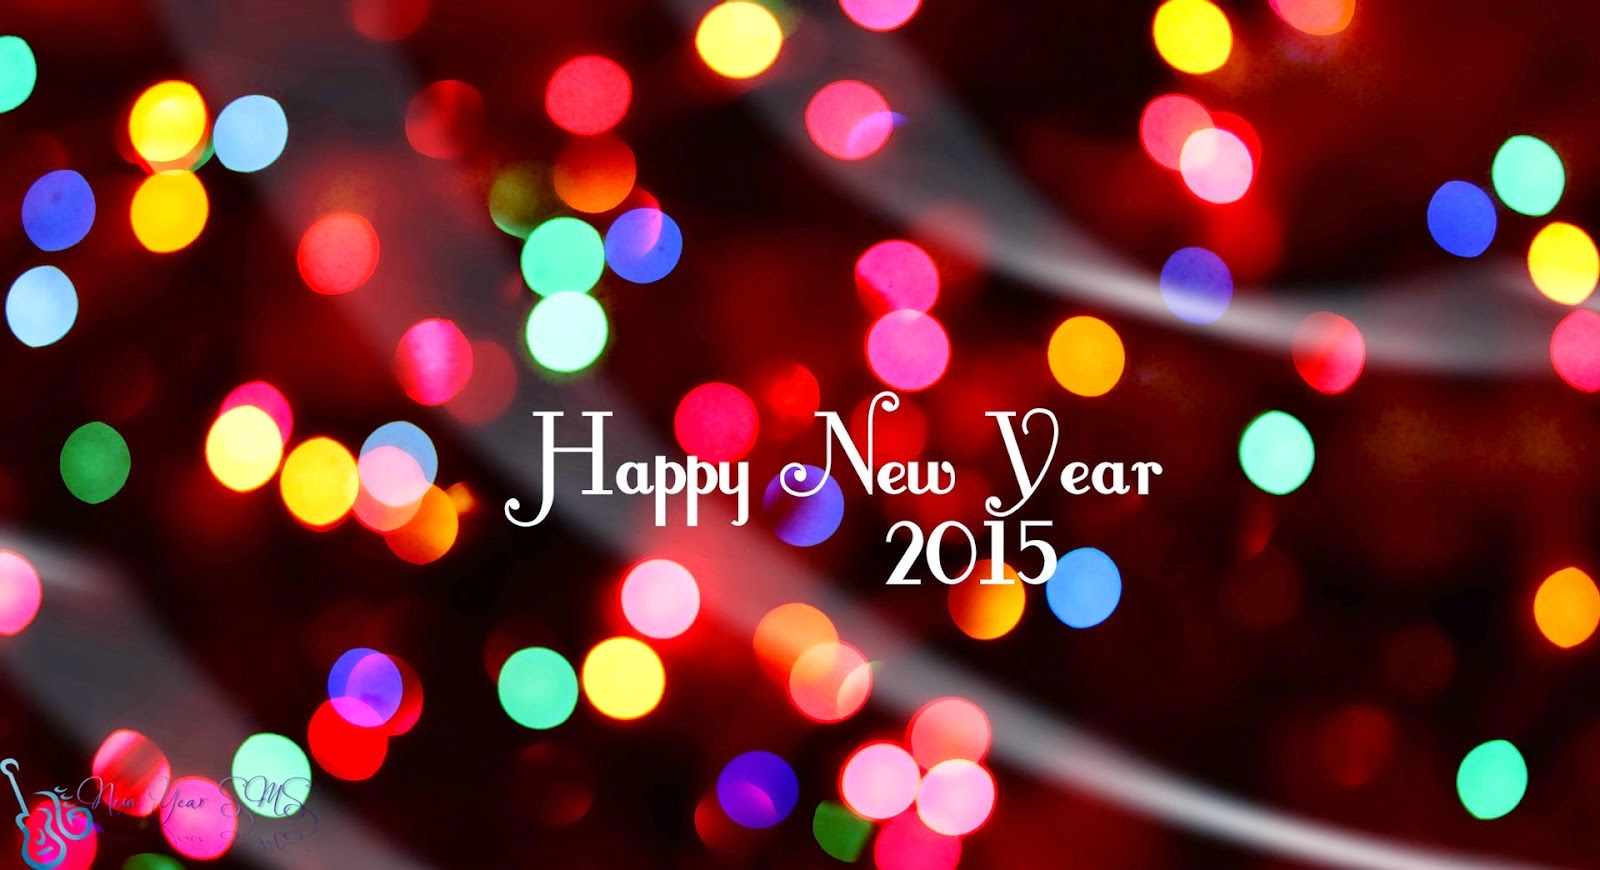 20 Best Colorful Happy New Year Wallpapers 2015 Smash Blog Trends 1600x870